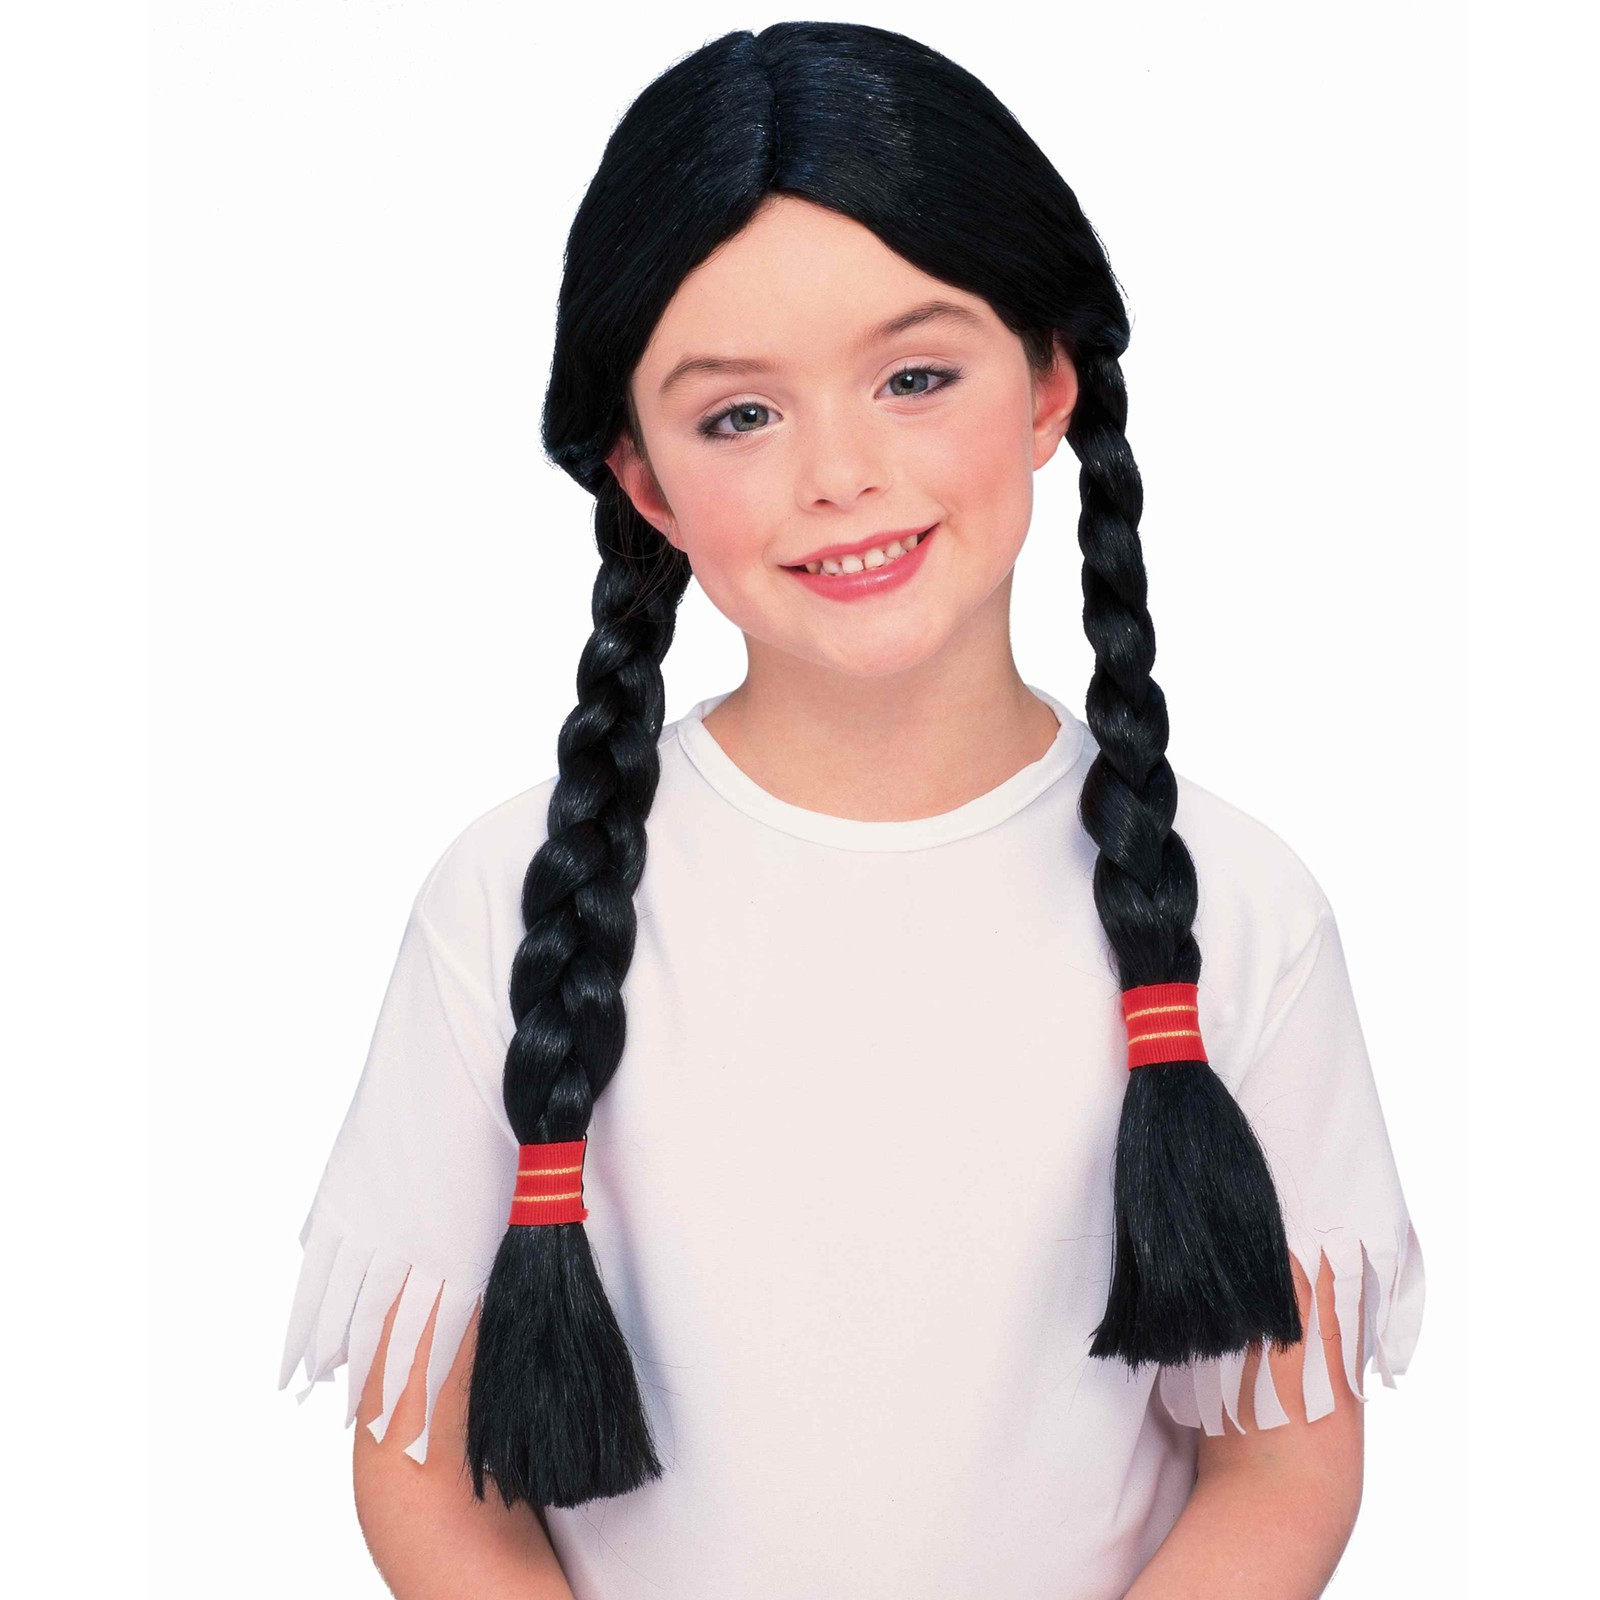 Native American Princess Wig (Child)